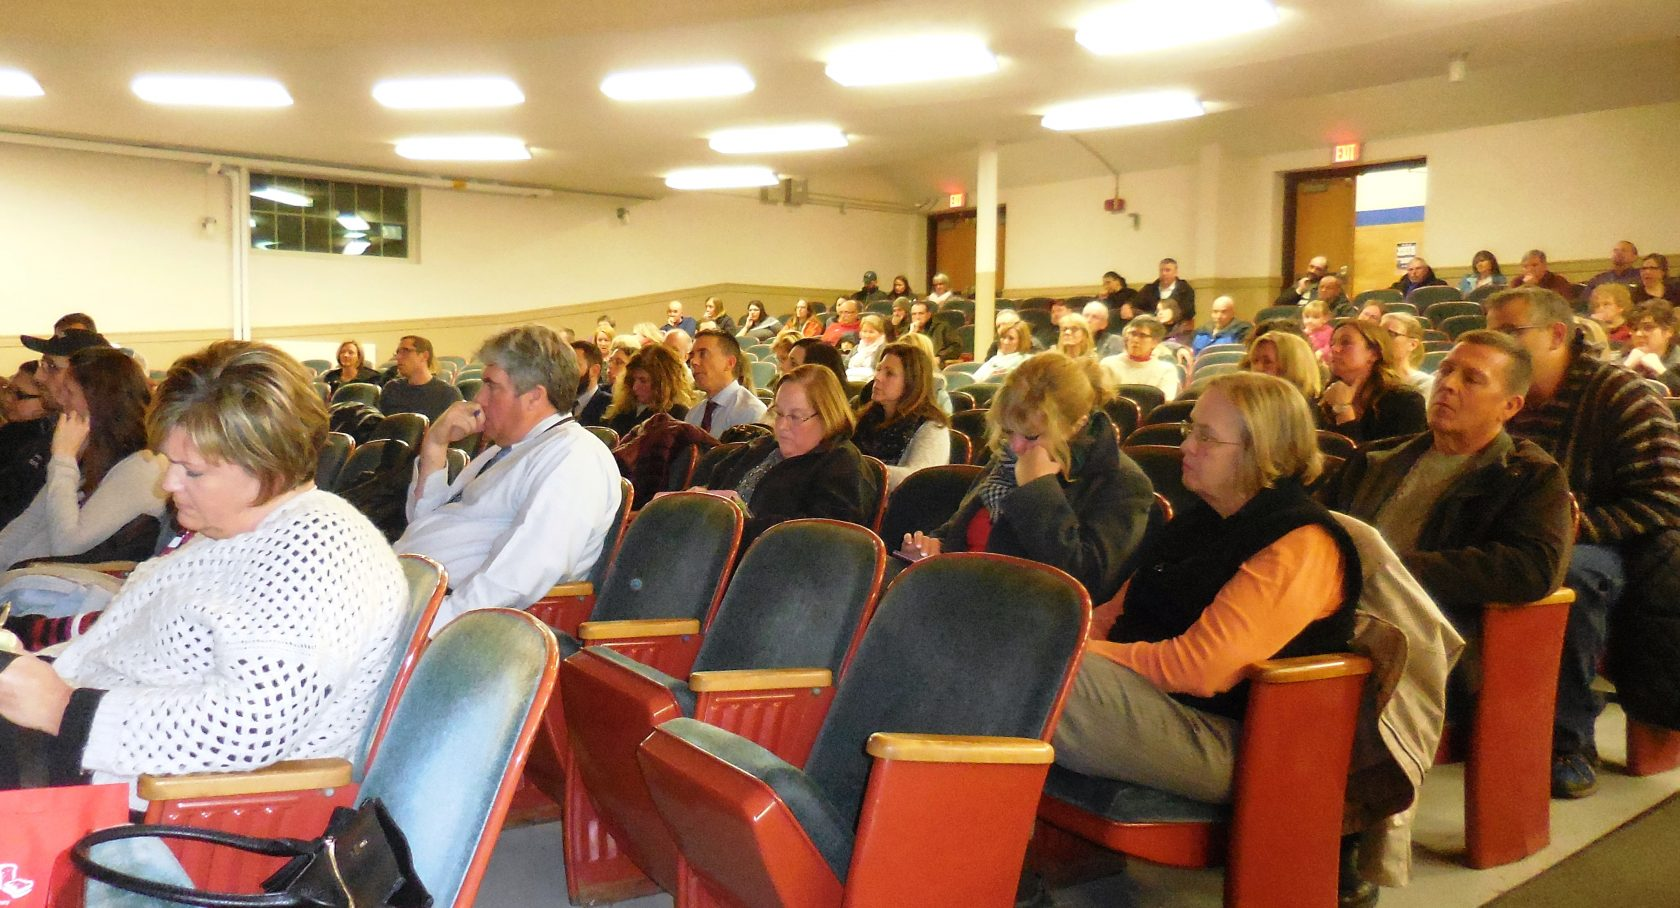 200 attend meeting on options for School District